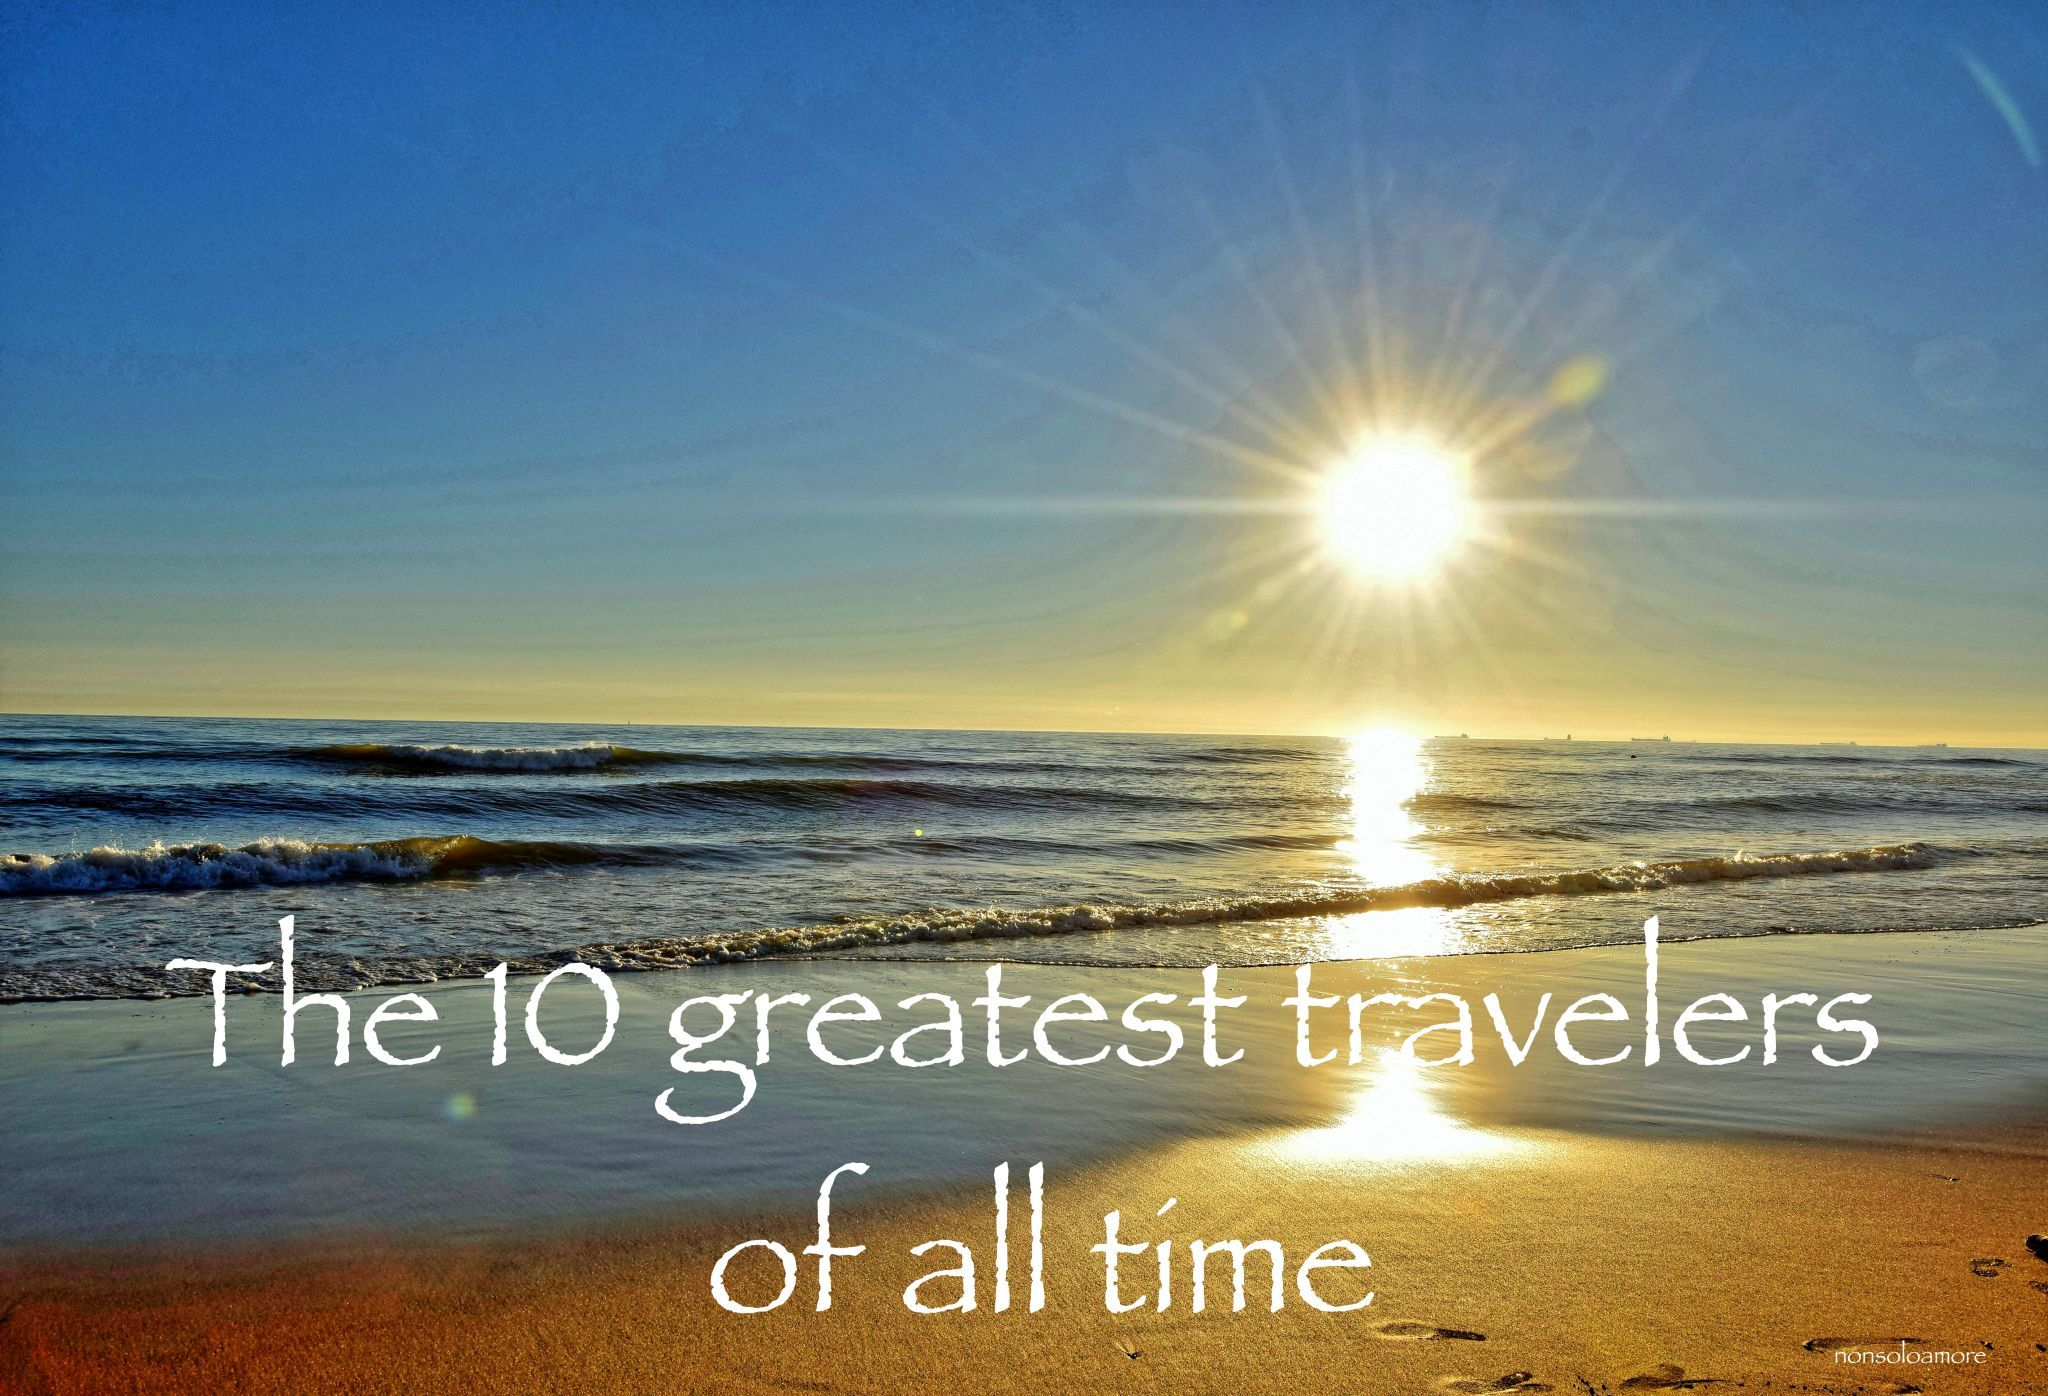 10 greatest travelers of all time